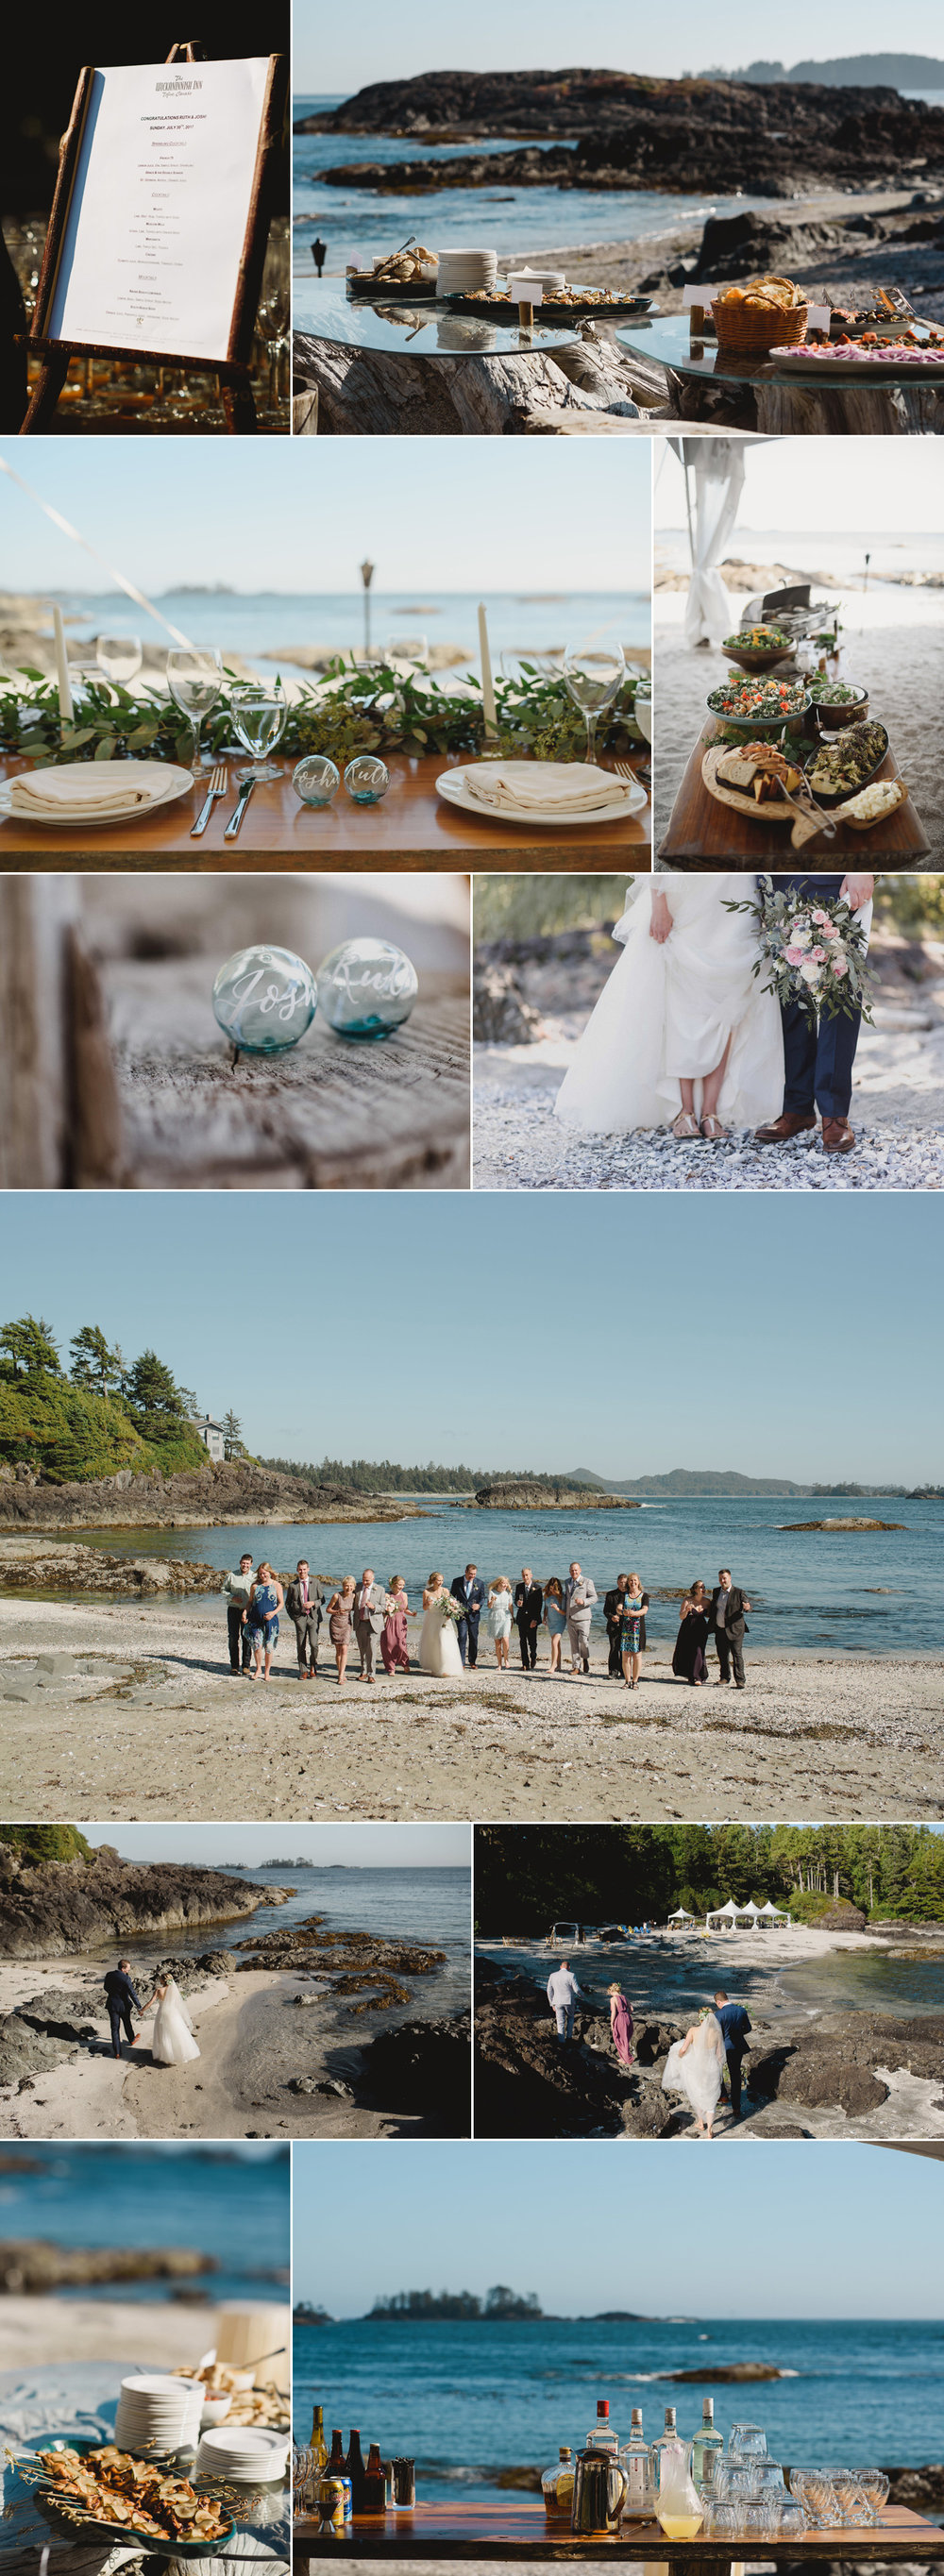 Wickaninnish Inn wedding, shell beach, elopement, tofino, luxury beach wedding, private beach wedding tofino, private venue, private tofino venue